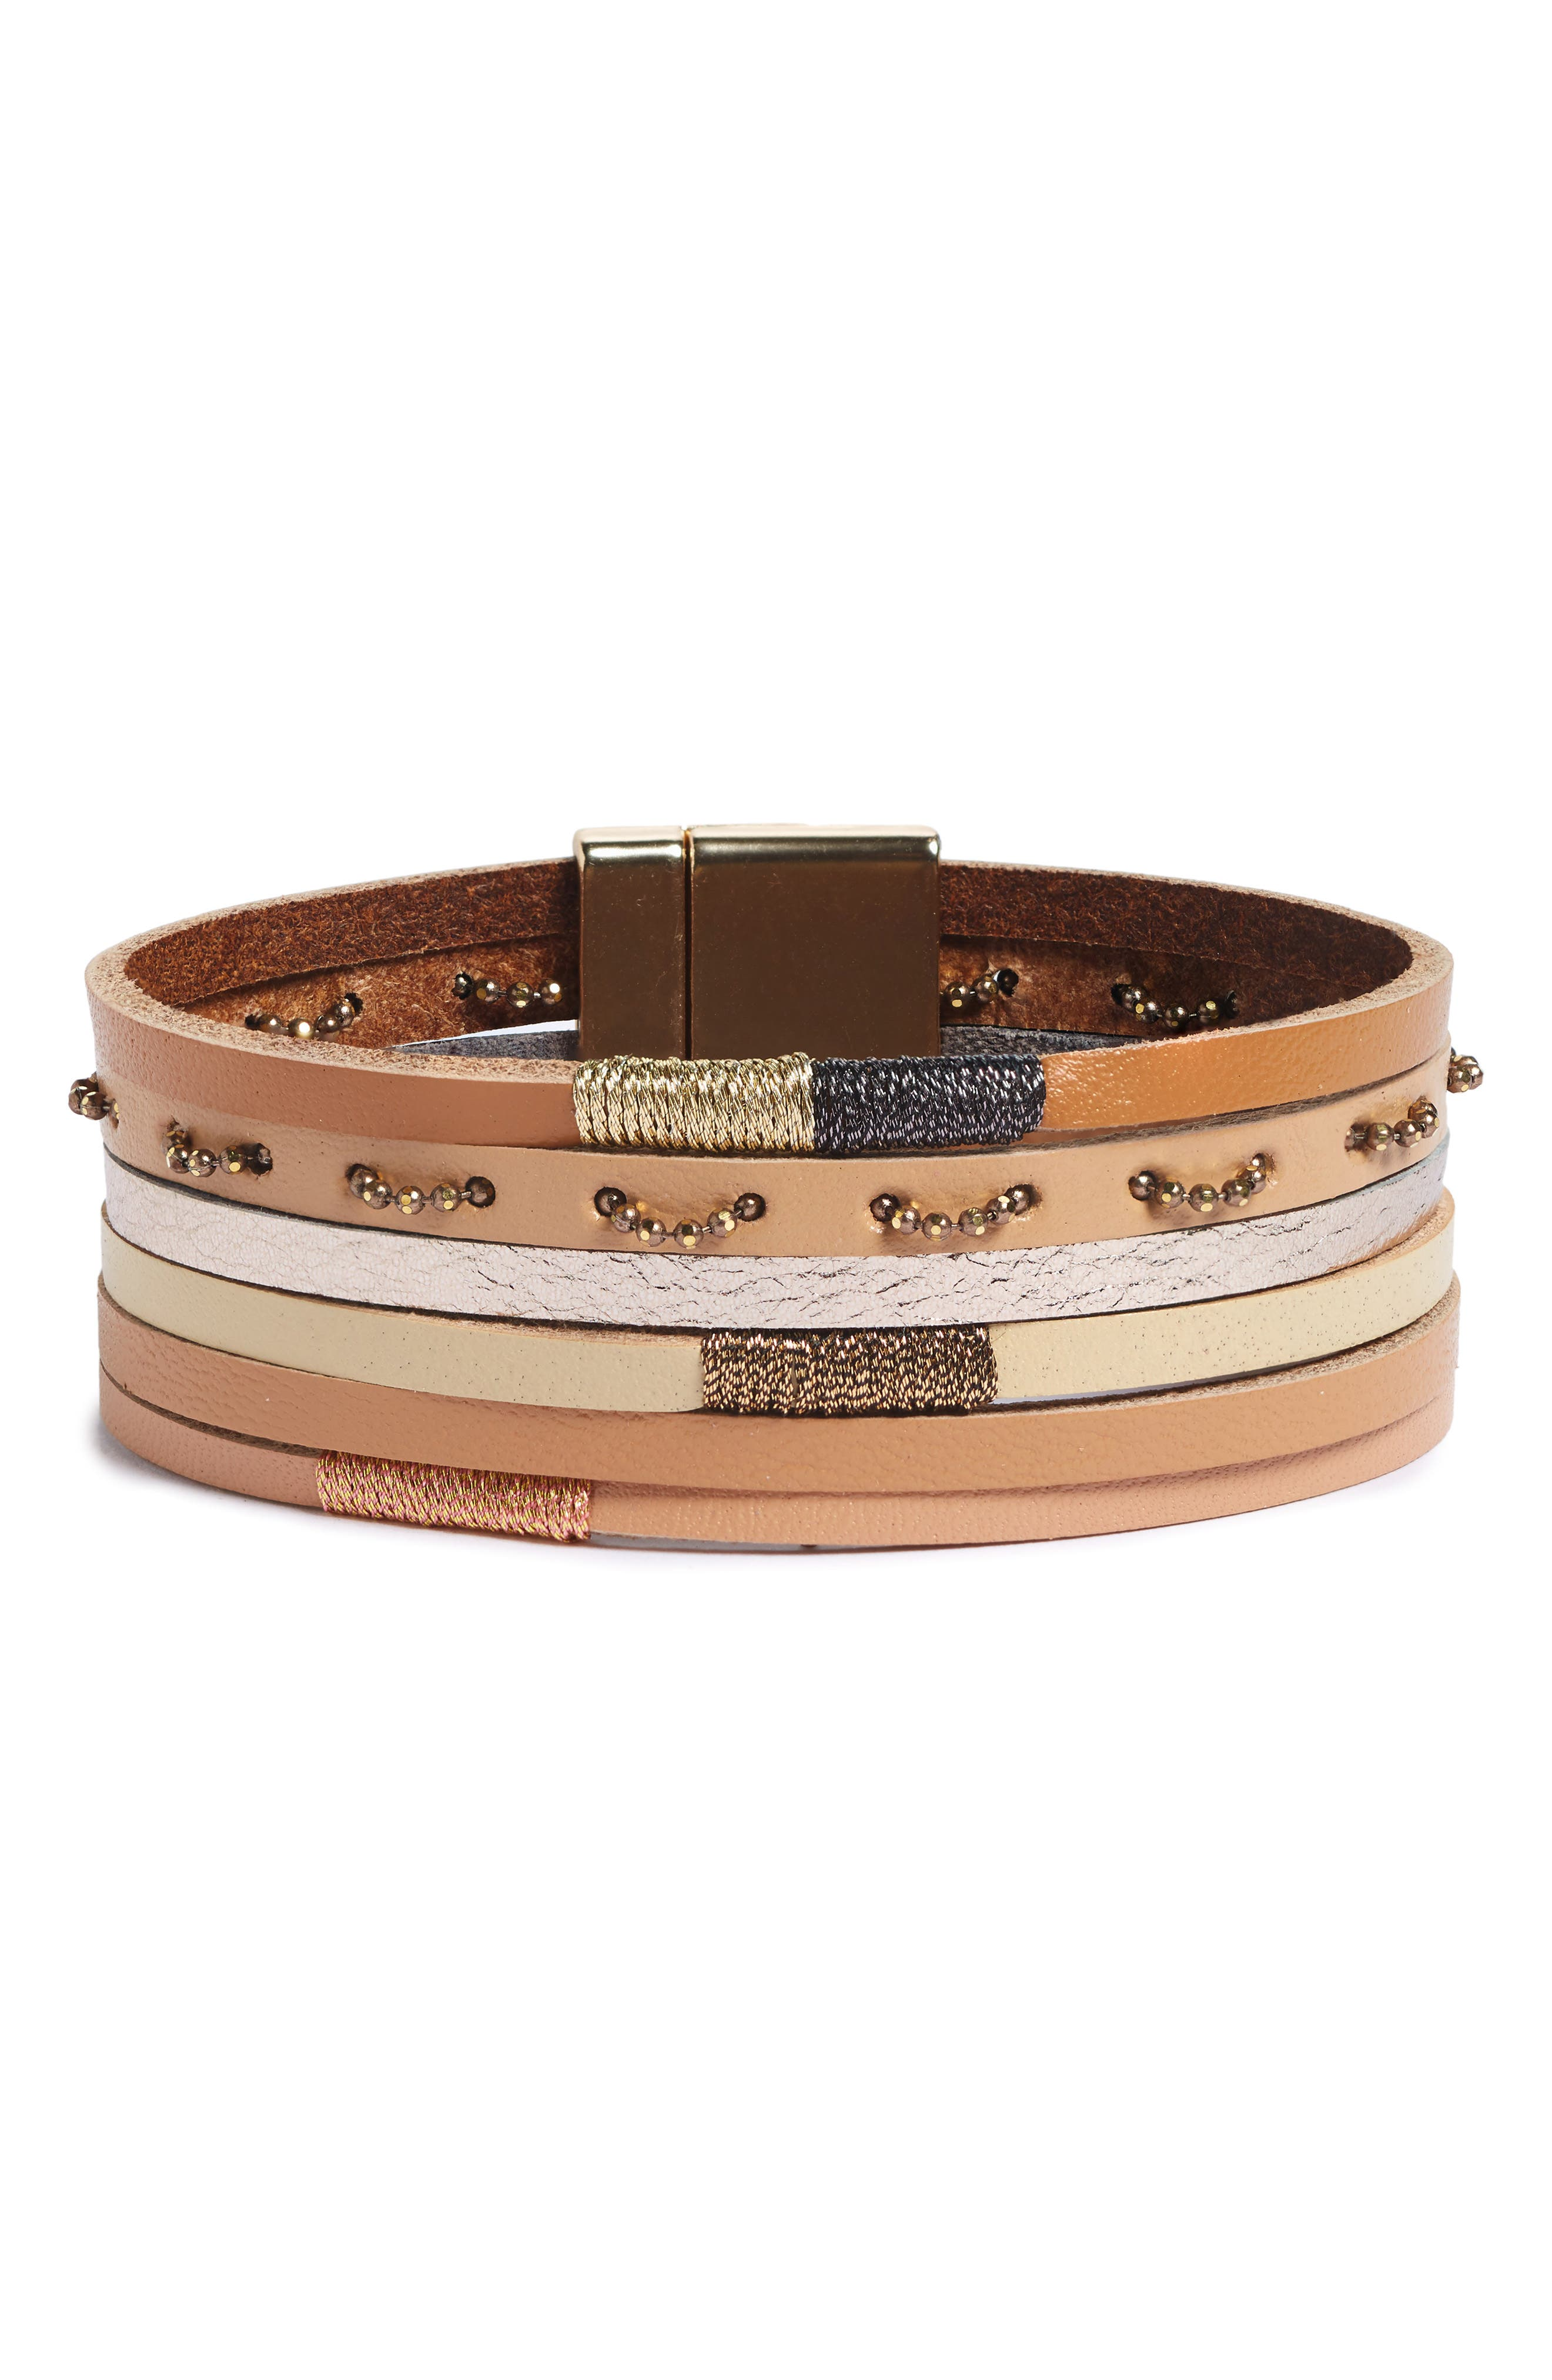 Panacea Multi Row Leather Bracelet